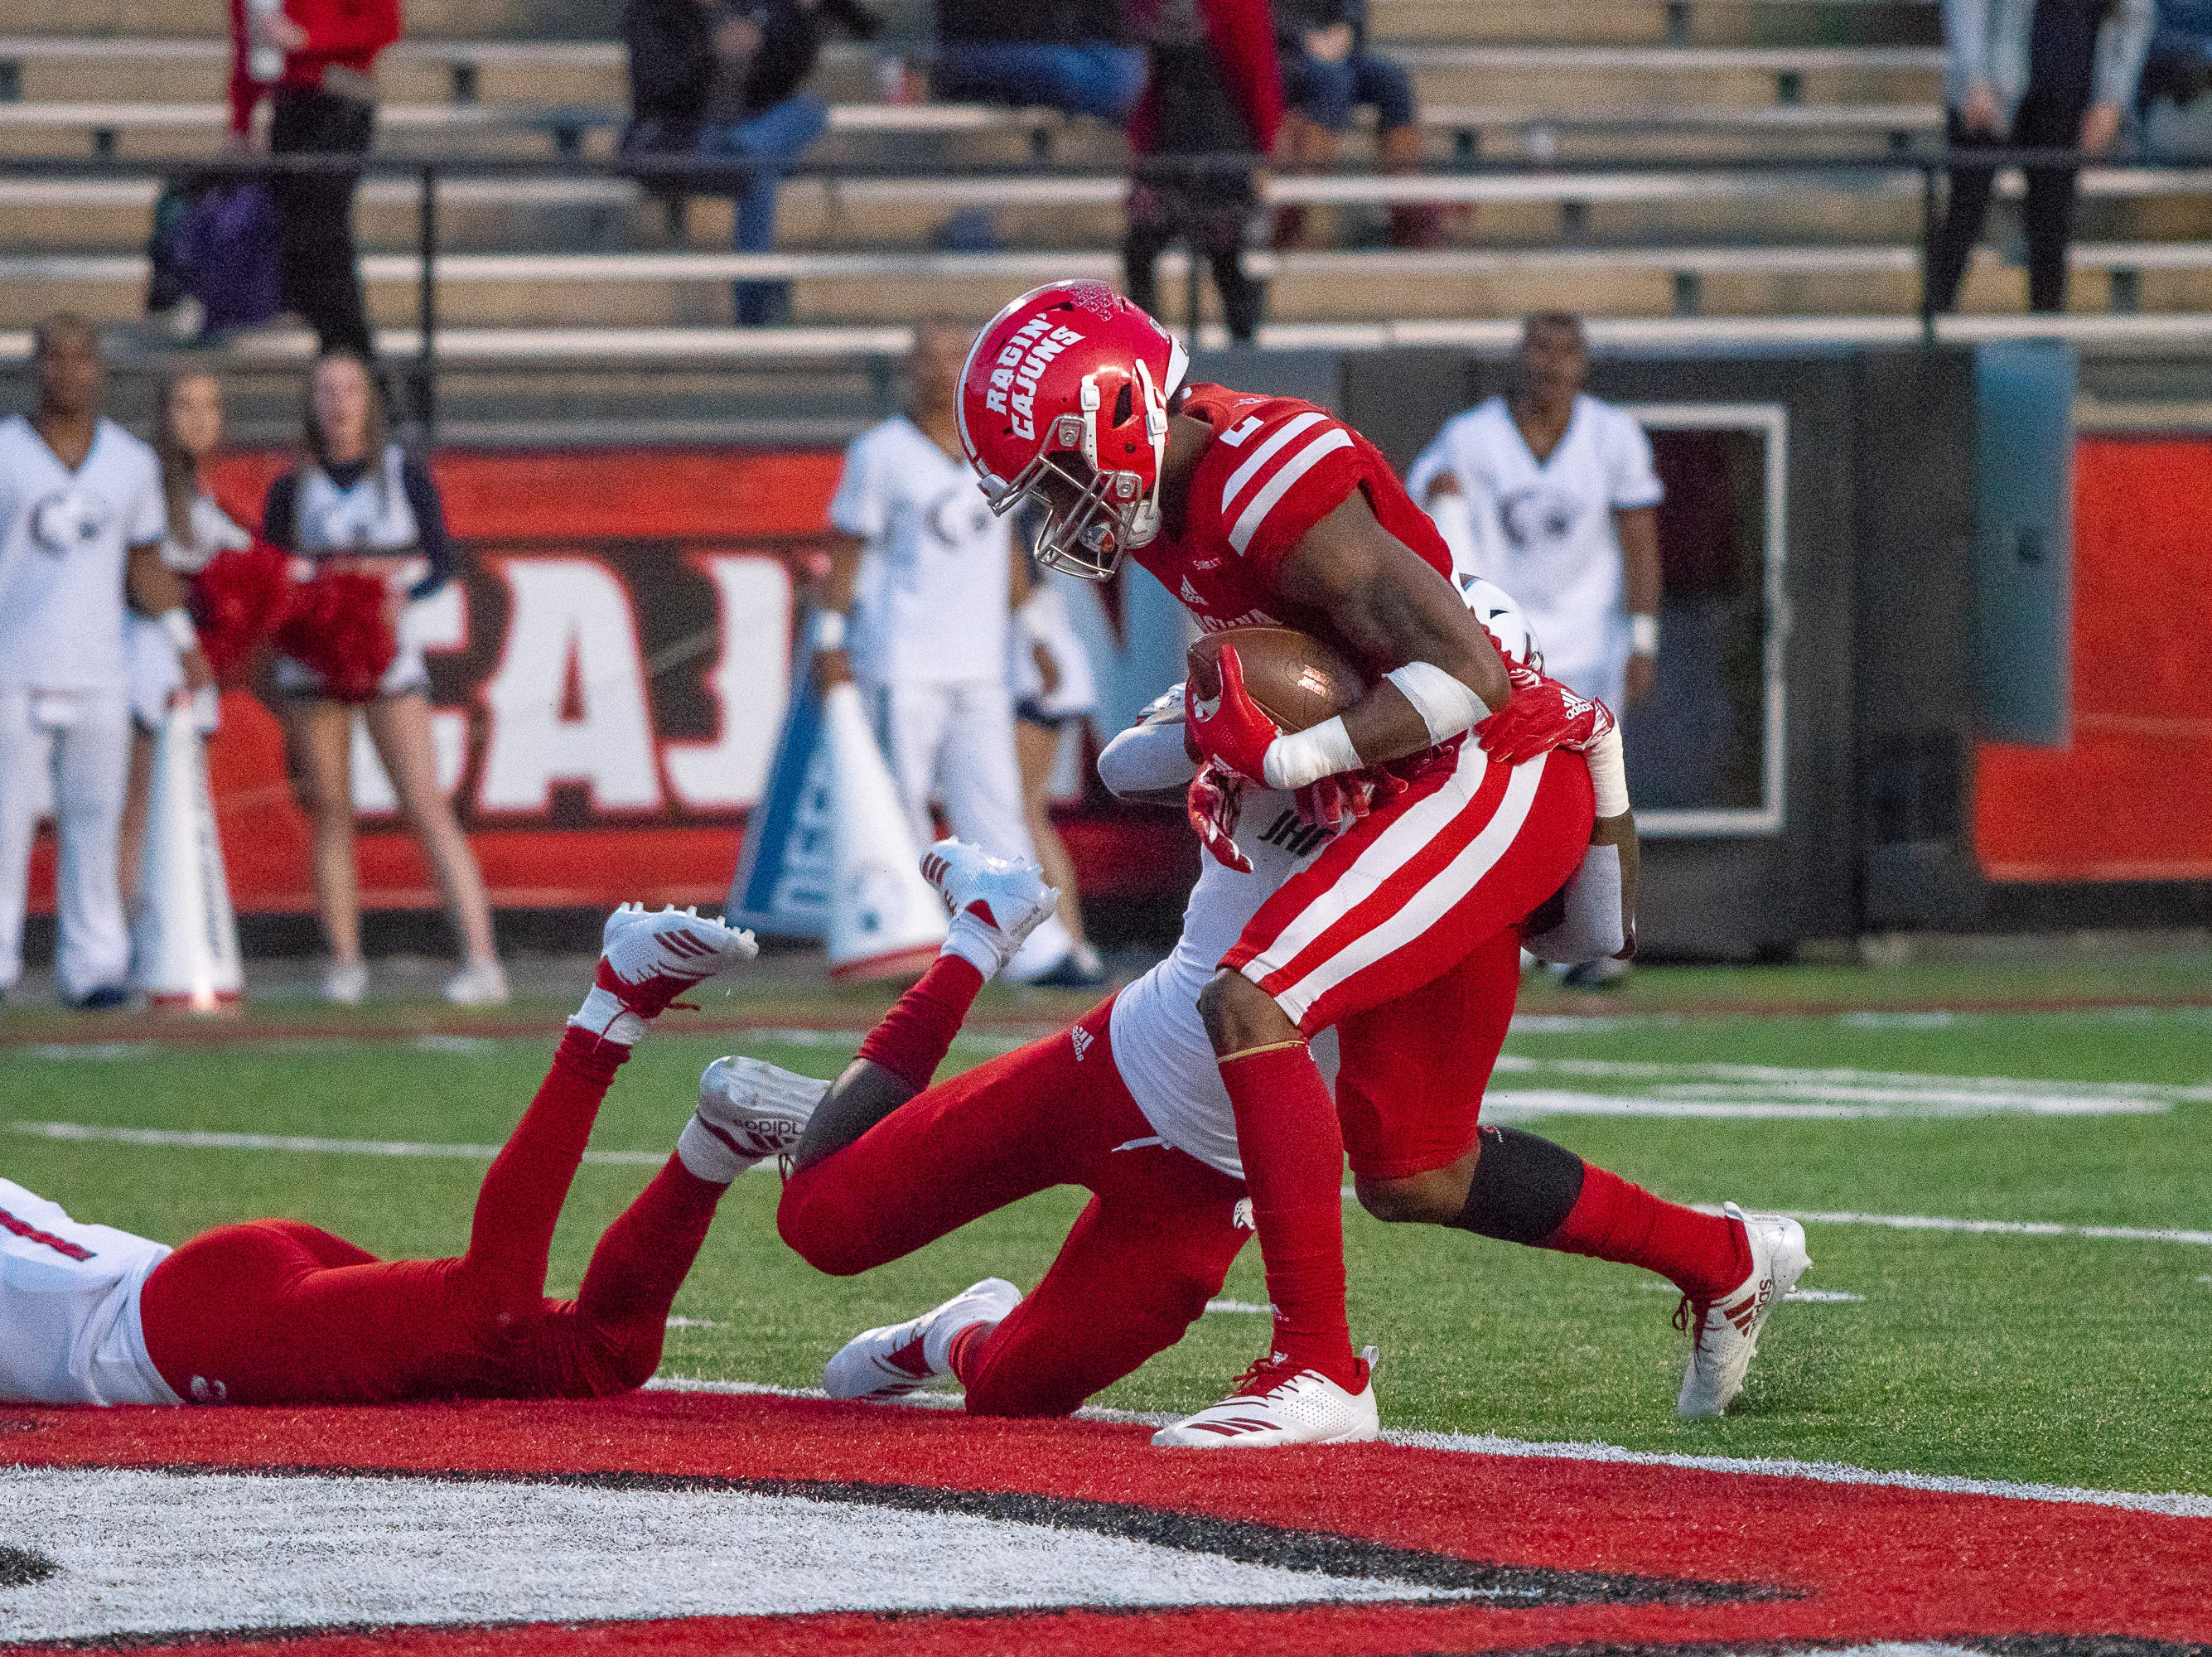 UL's Ja'Marcus Bradley charges into the endzone to score as the Ragin' Cajuns play against the South Alabama Jaguars at Cajun Field on November 17, 2018.